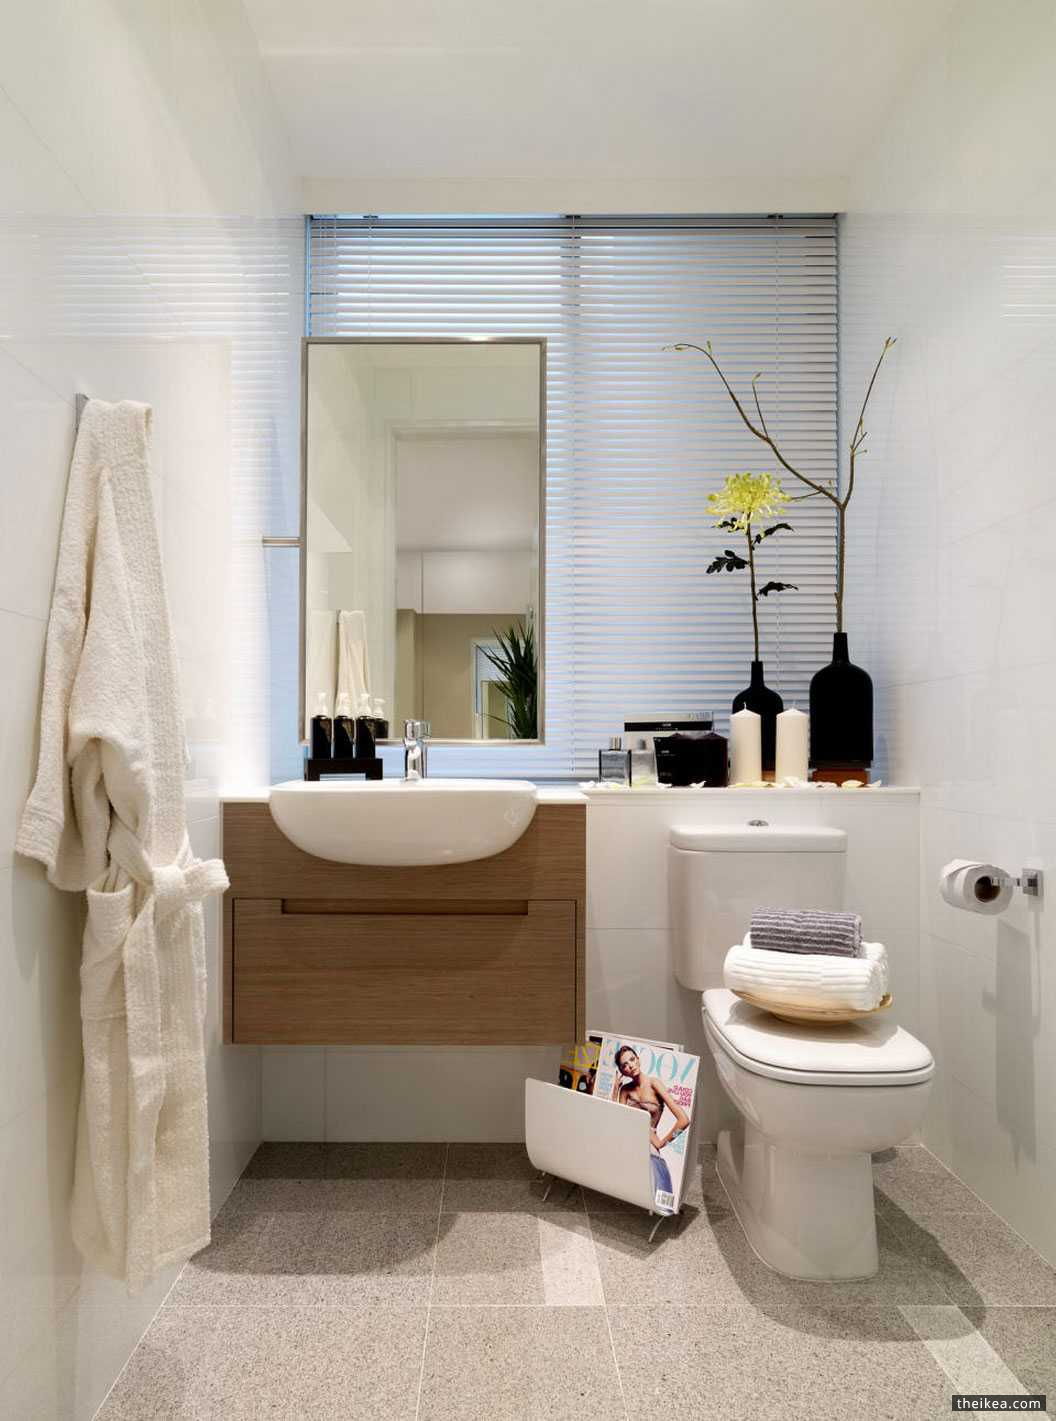 Pin by The Ikea on The Ikea | Pinterest | Bathroom, Small bathroom White Guest Bathroom Designs Html on white bedroom designs, white master bath designs, white covered patio designs, white bathtub designs, white dining room designs, white shower designs, white living room designs, white walk-in closet designs, white kitchen designs, white furniture designs, white driveway designs, white bar designs, white garden designs, white front porch designs, white basement designs,